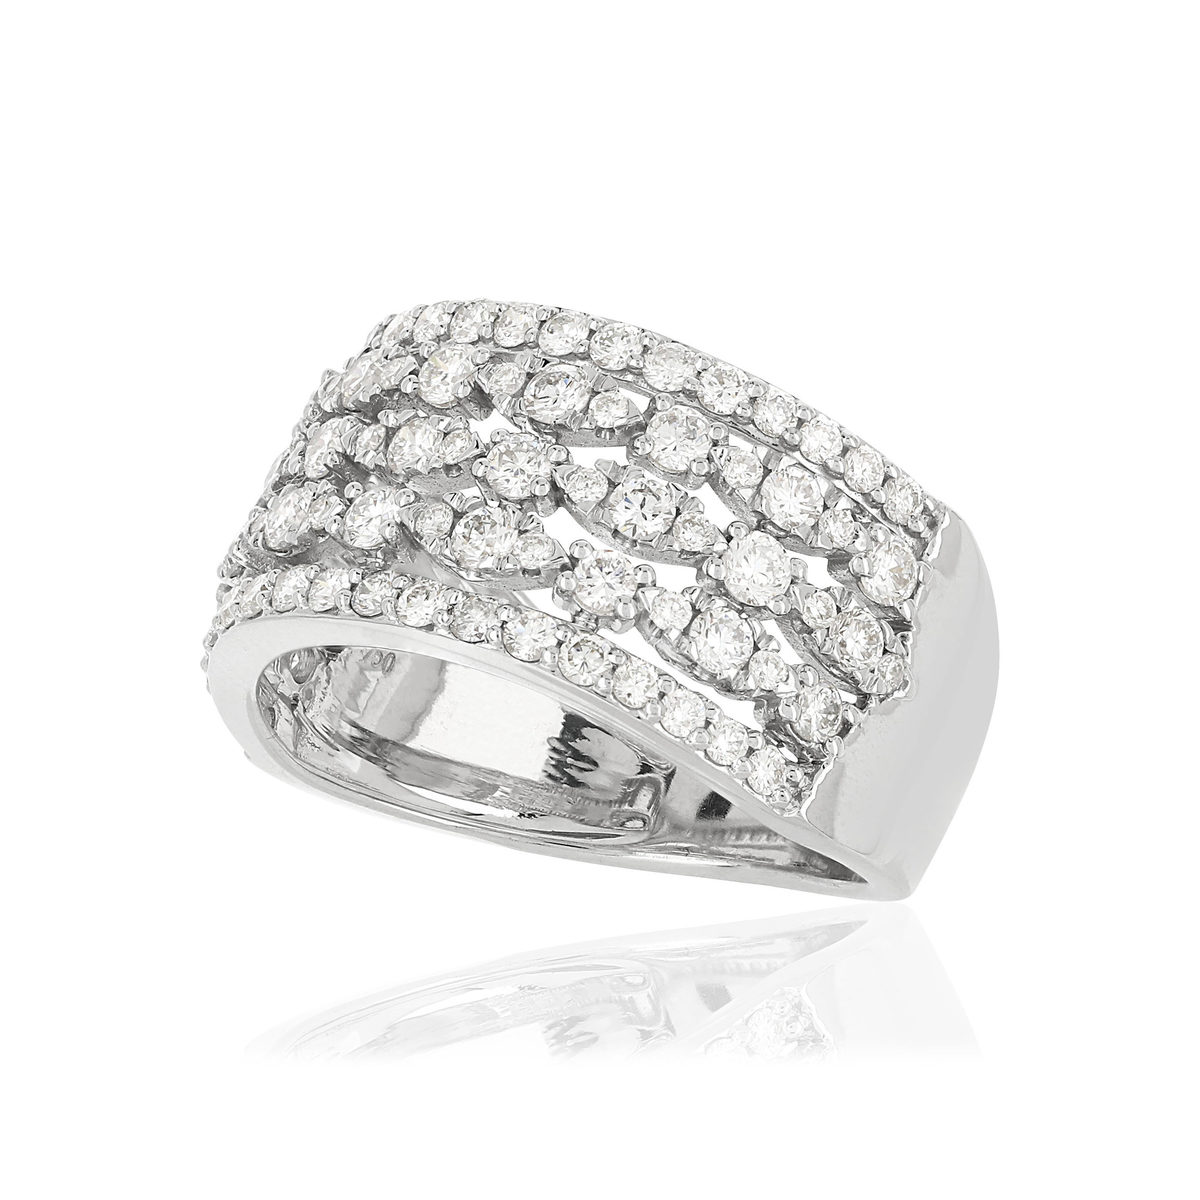 Bague MATY Or 750 blanc Diamants synthétiques - vue VD1